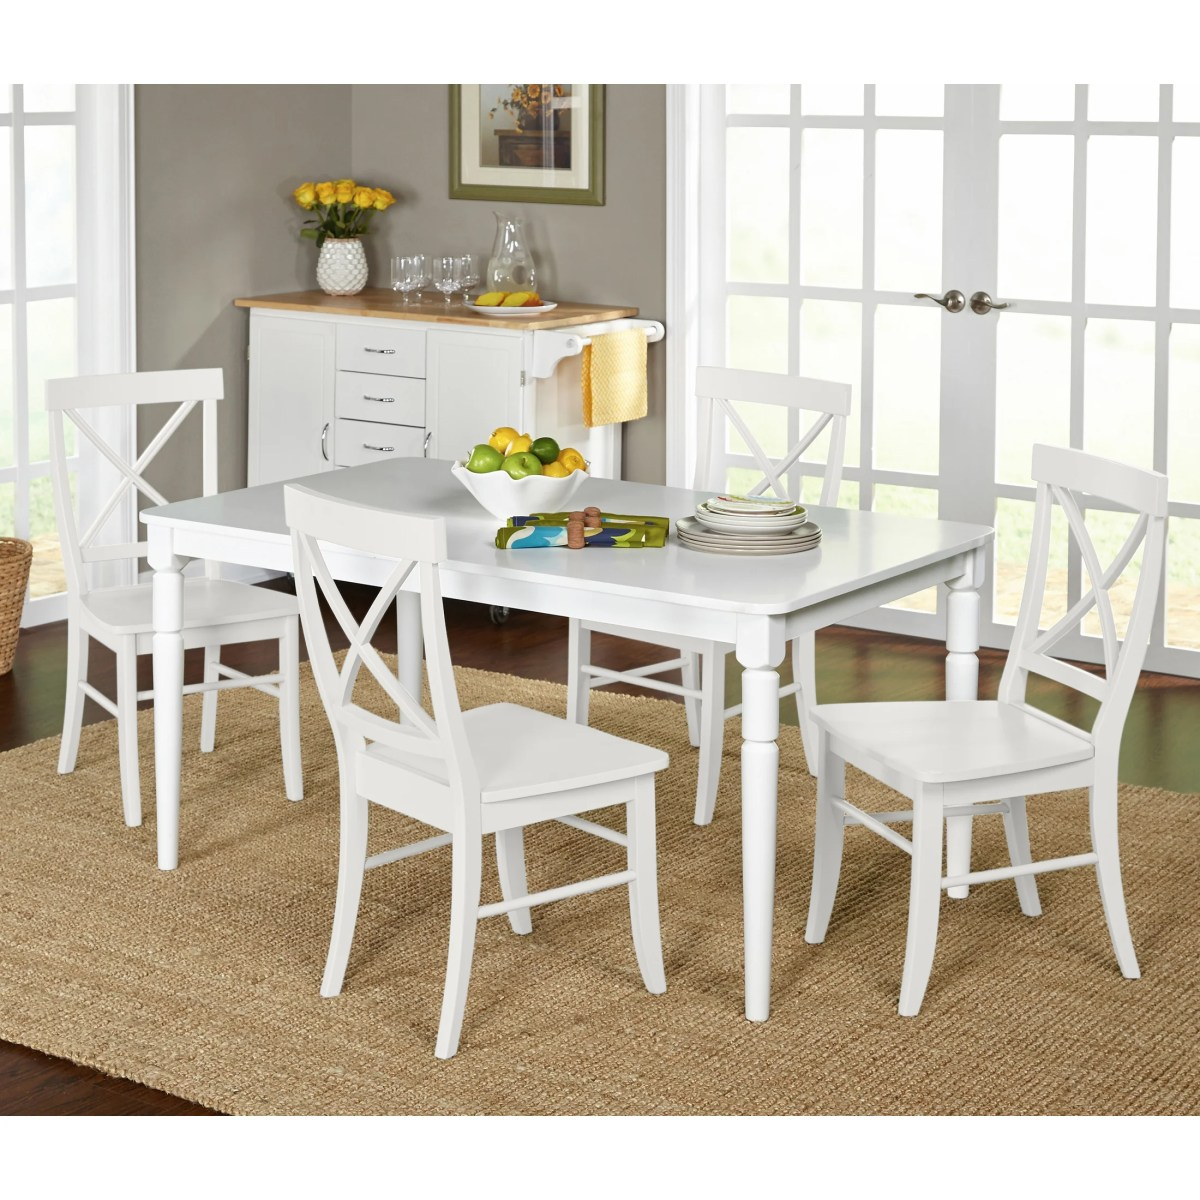 Country kitchen tables